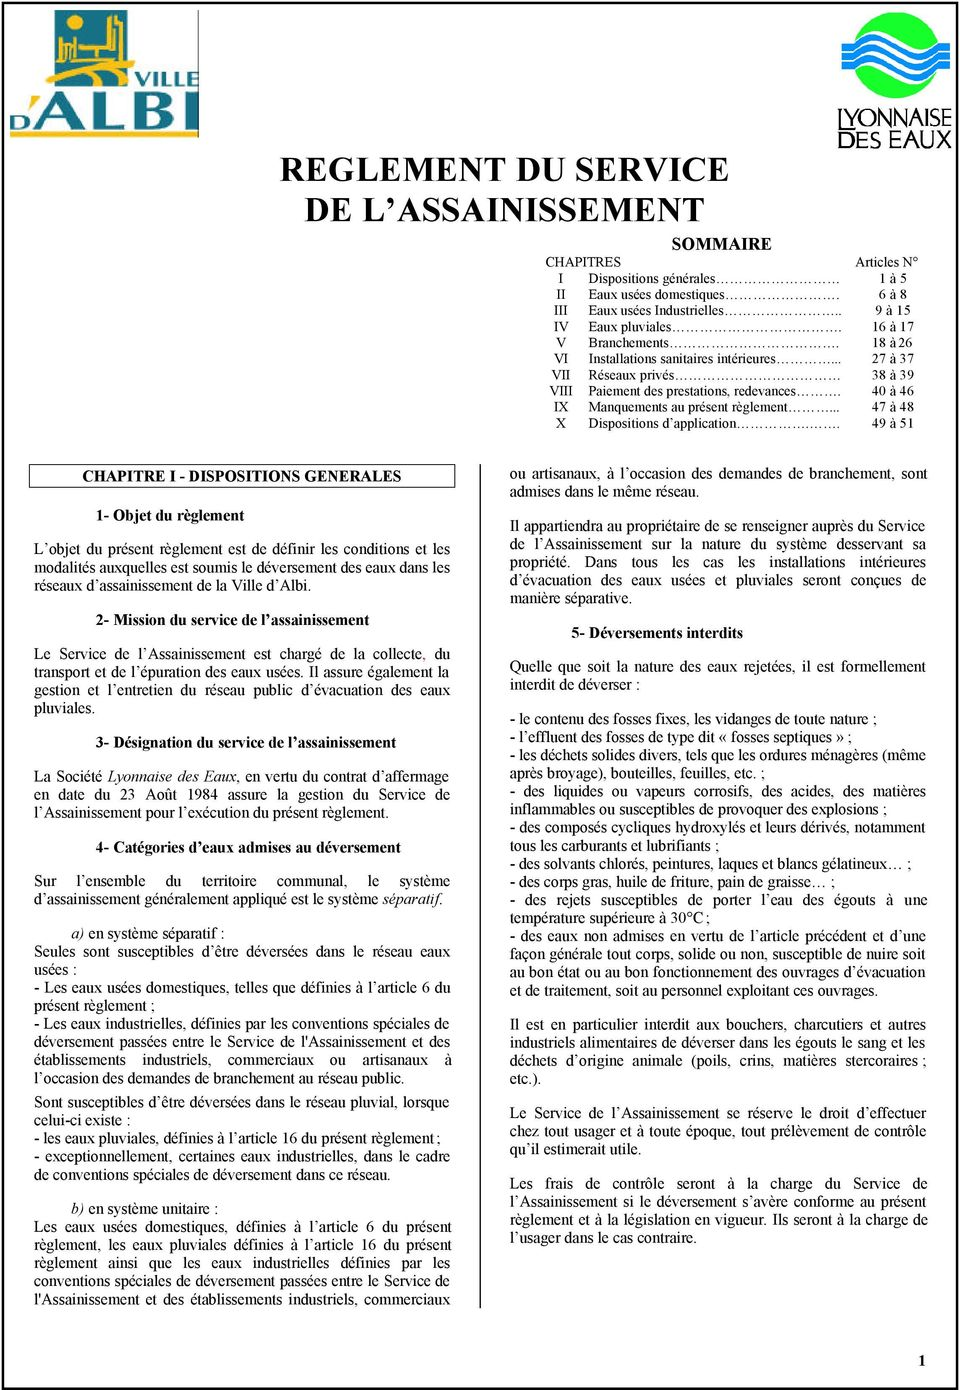 .. 47 à 48 X Dispositions d application.